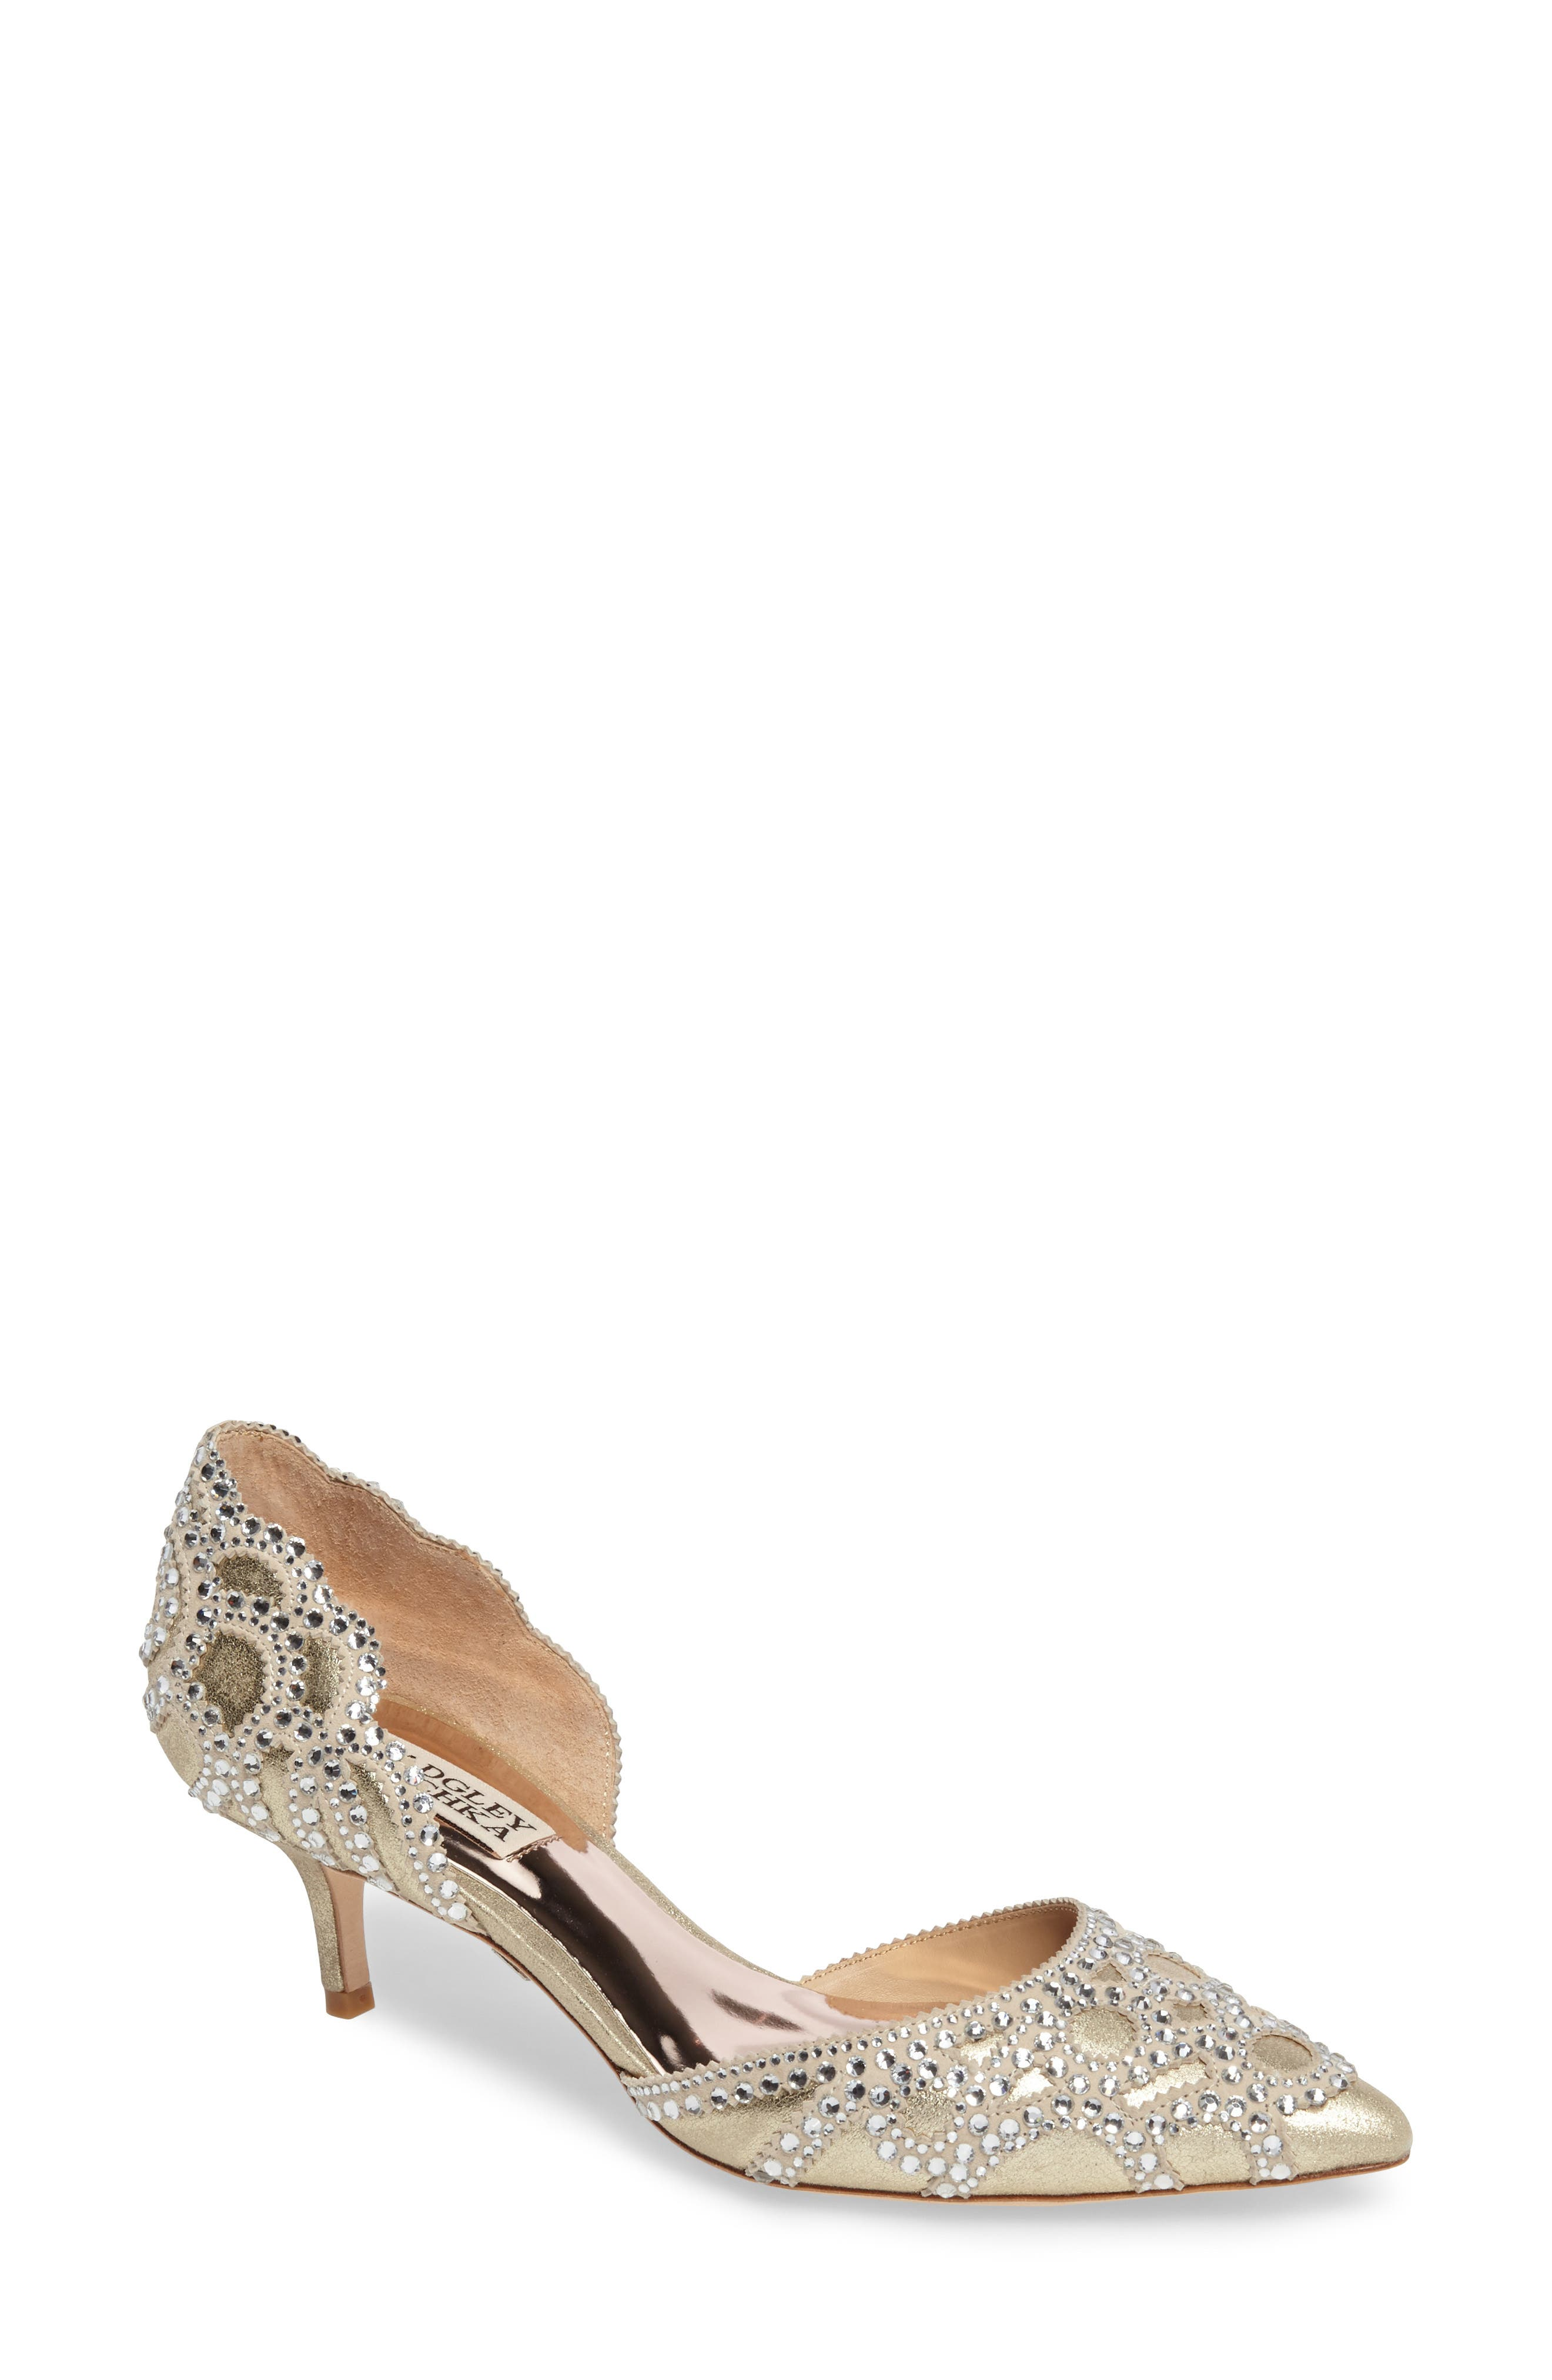 Main Image - Badgley Mischka 'Ginny' Embellished d'Orsay Pump (Women)